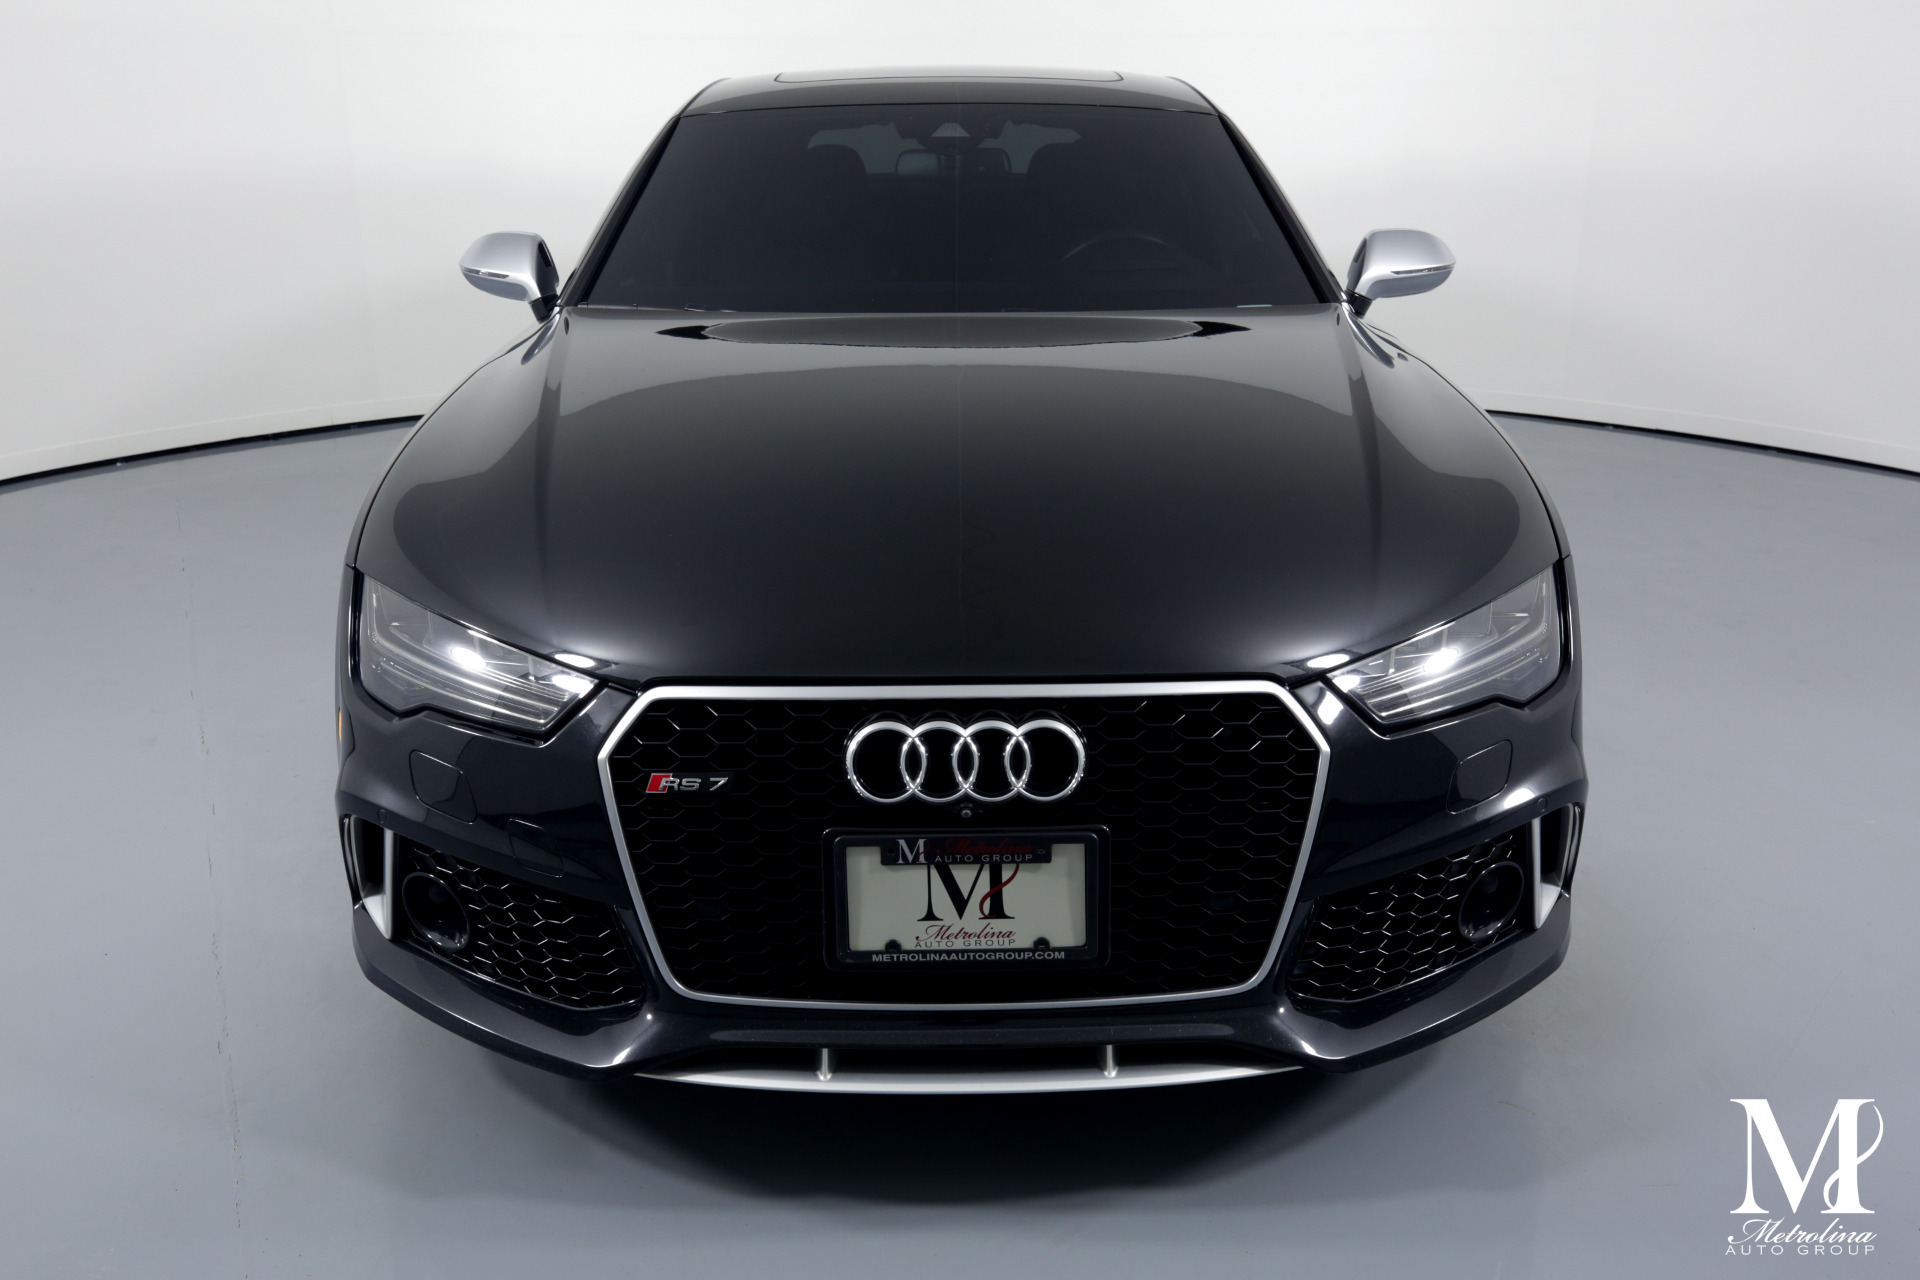 Used 2016 Audi RS 7 4.0T quattro Prestige for sale $68,456 at Metrolina Auto Group in Charlotte NC 28217 - 3